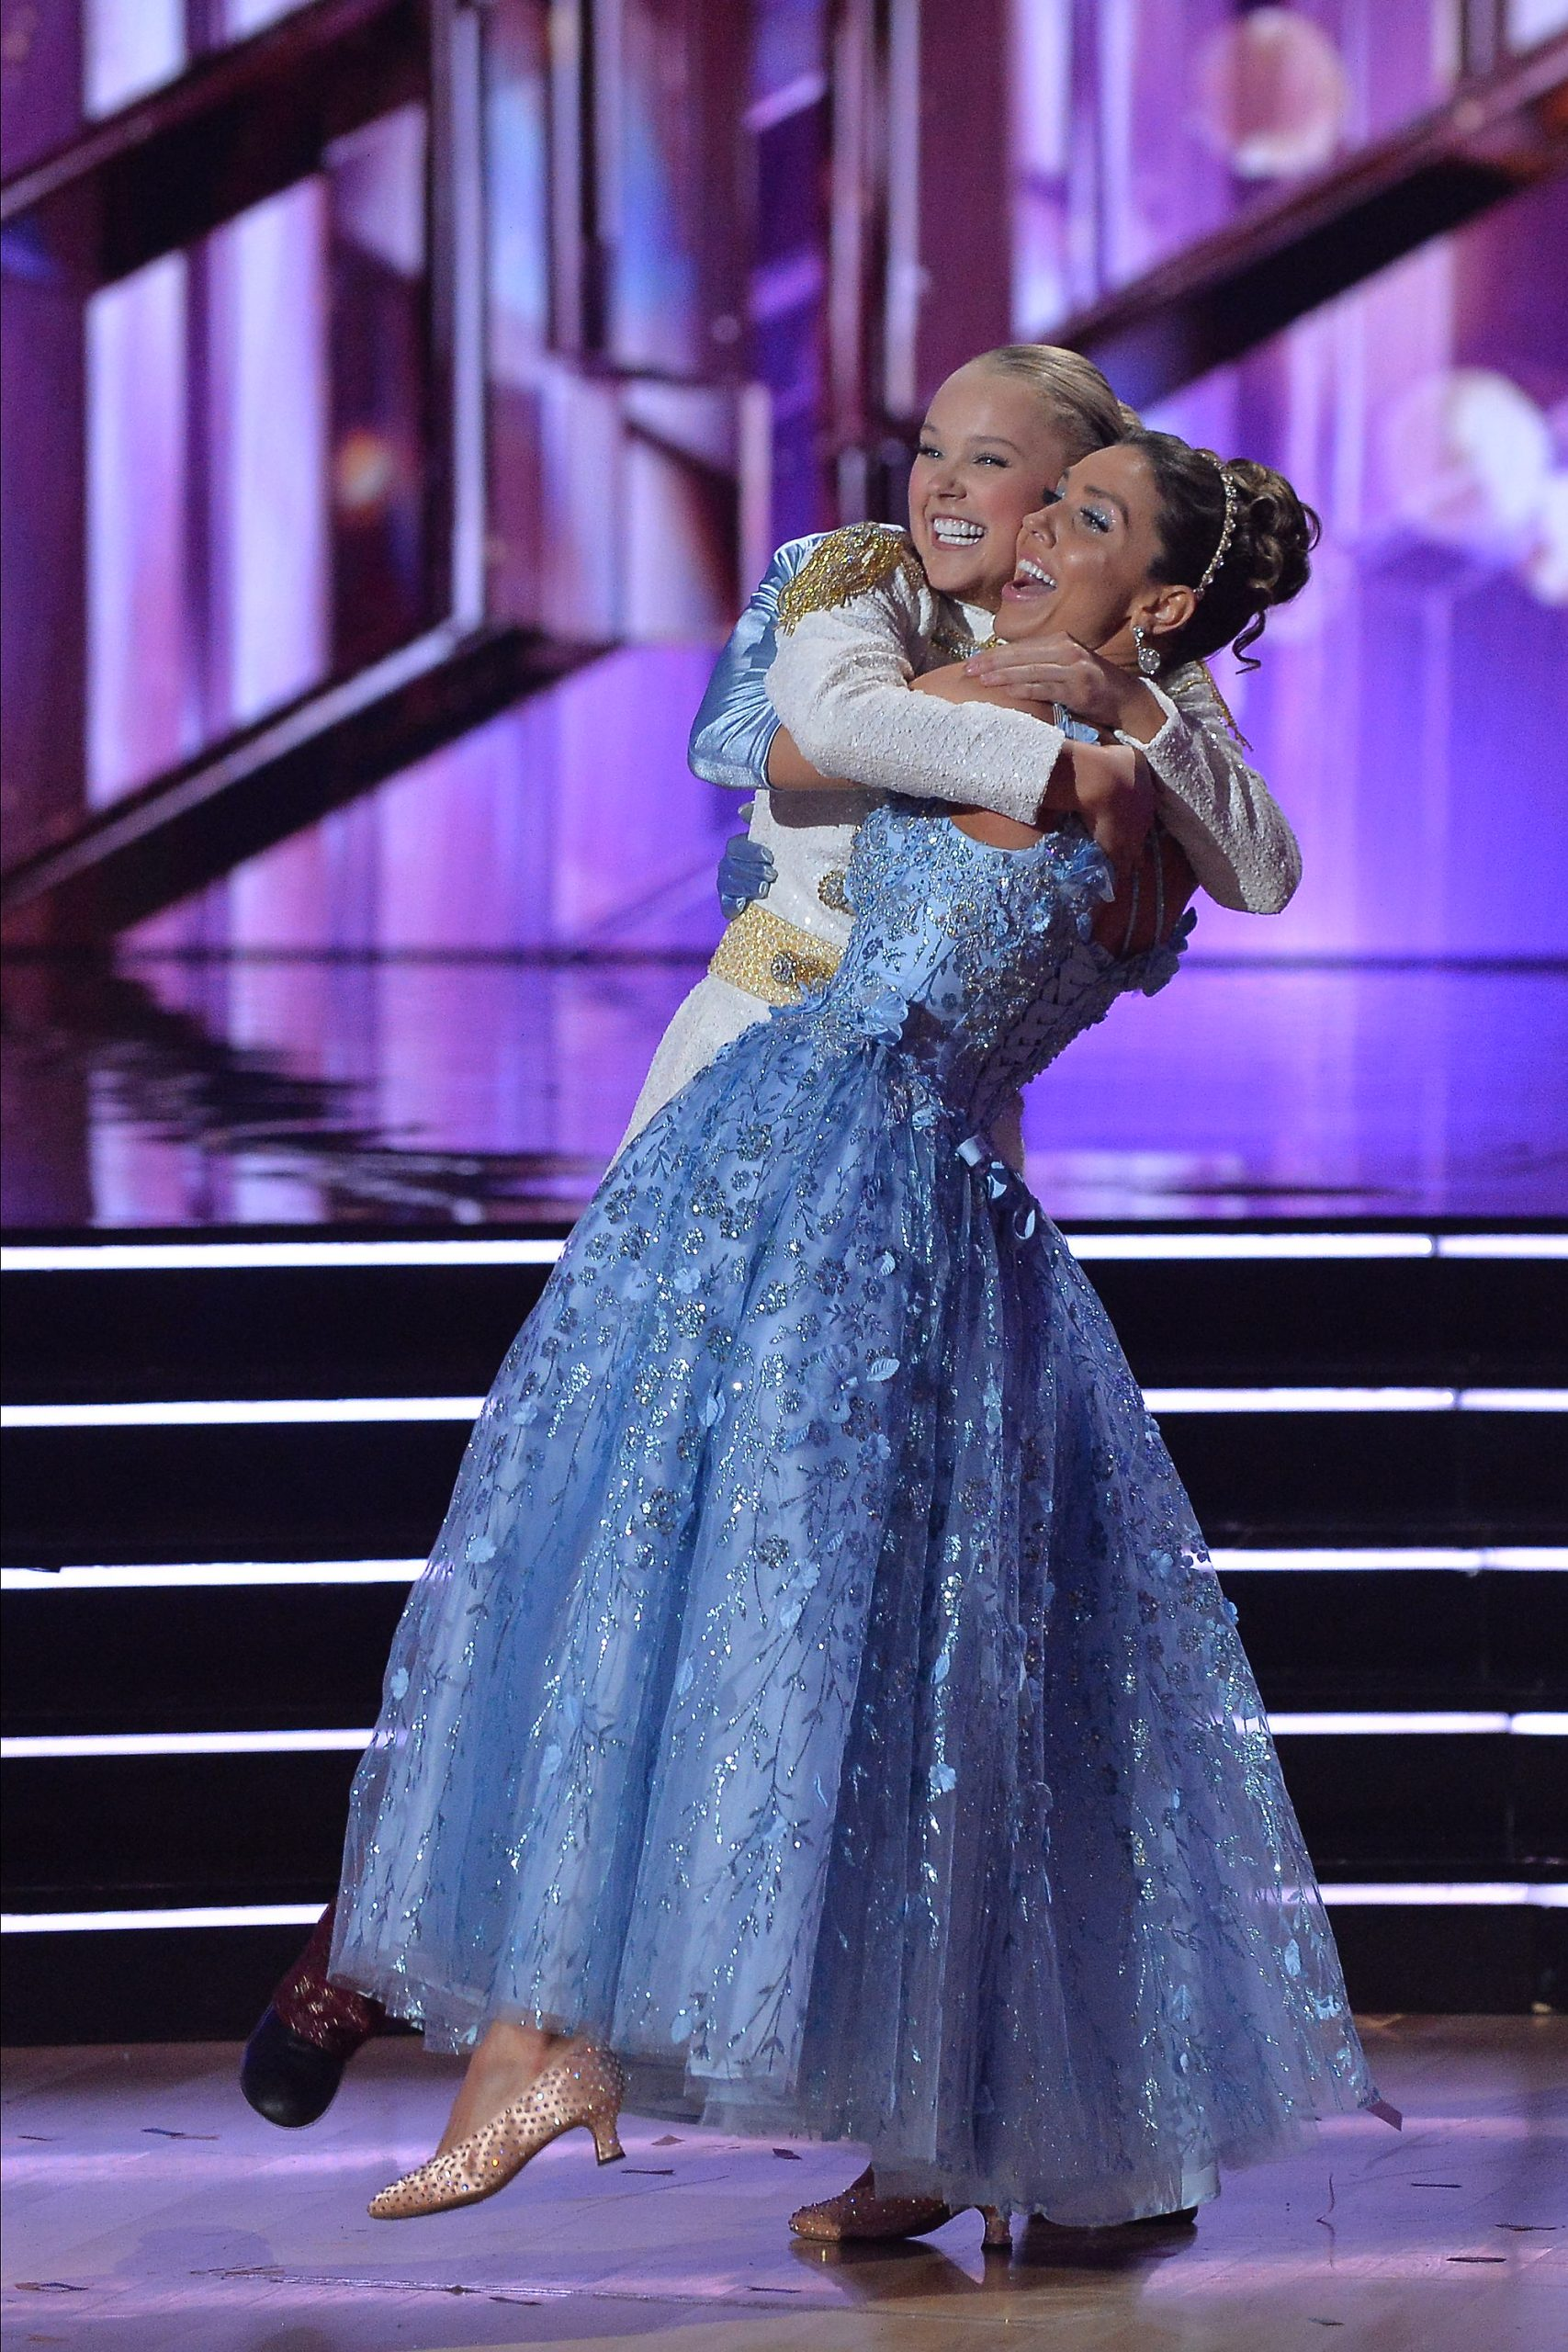 My Top 7 Looks From 'Dancing With The Stars' Disney Heroes Night